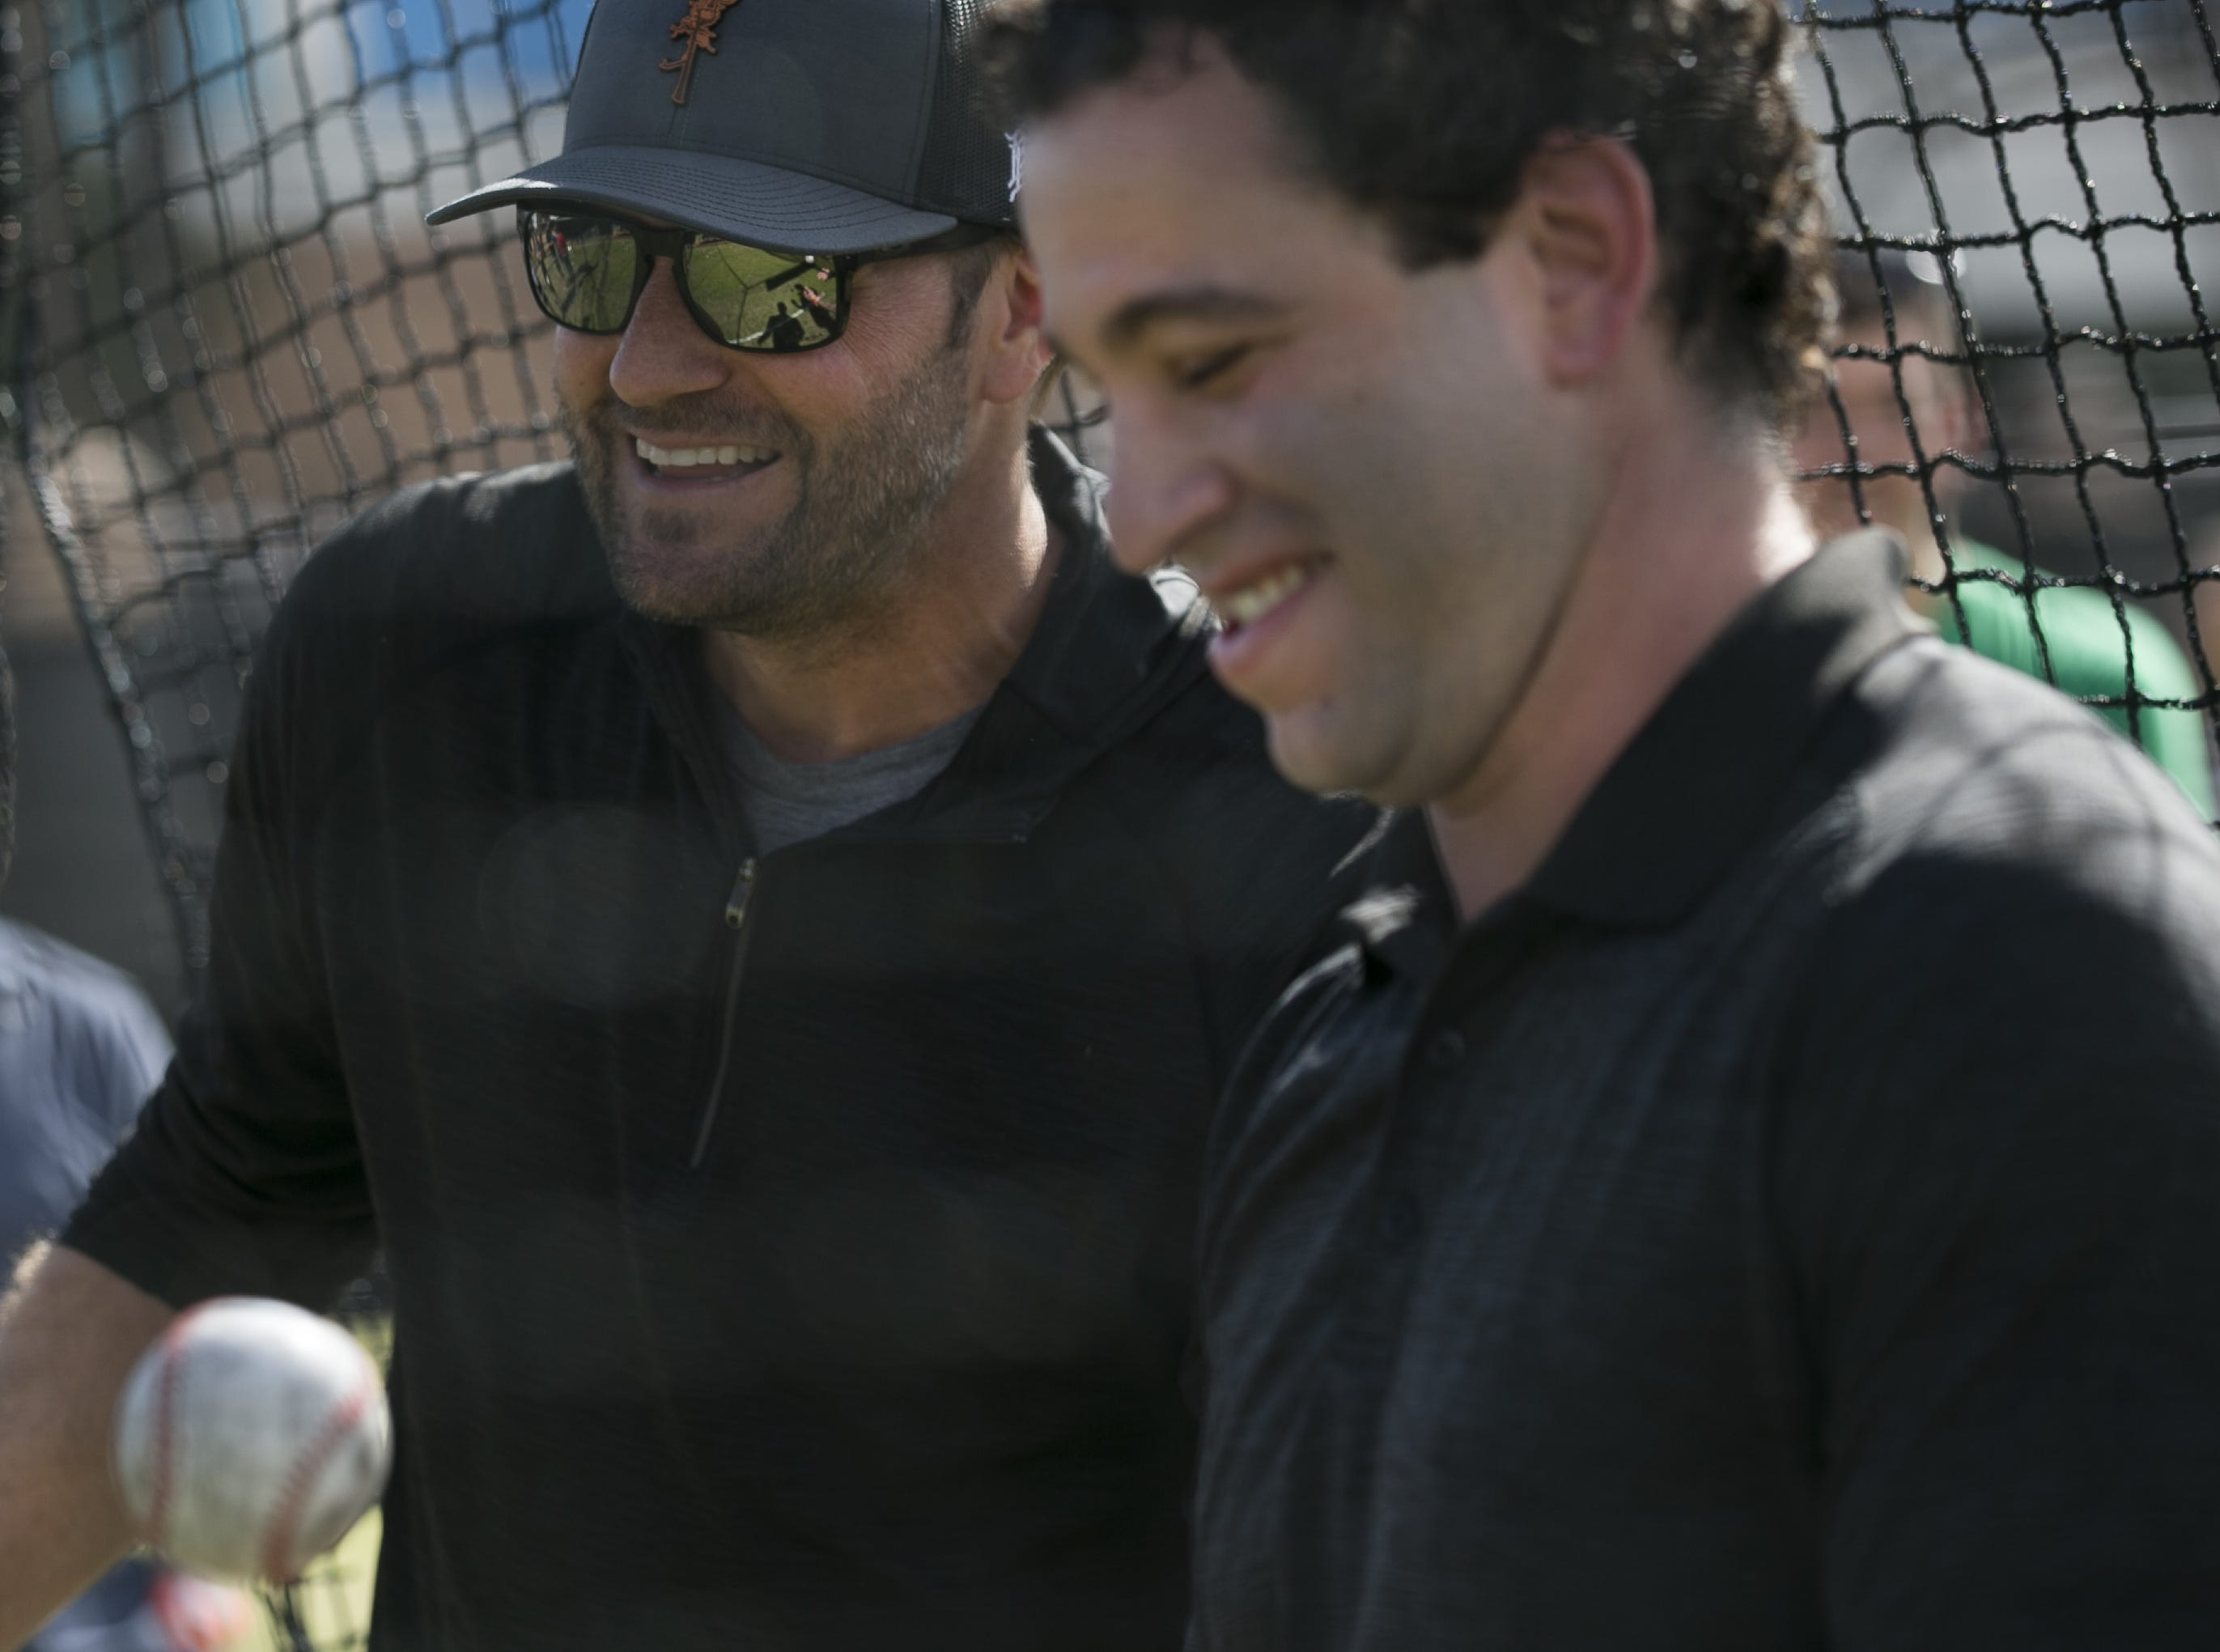 Former MLB pitcher Shawn Estes (left) shows fans pitching techniques at the Innings Festival at Tempe Beach Park on Saturday, March 2, 2019.